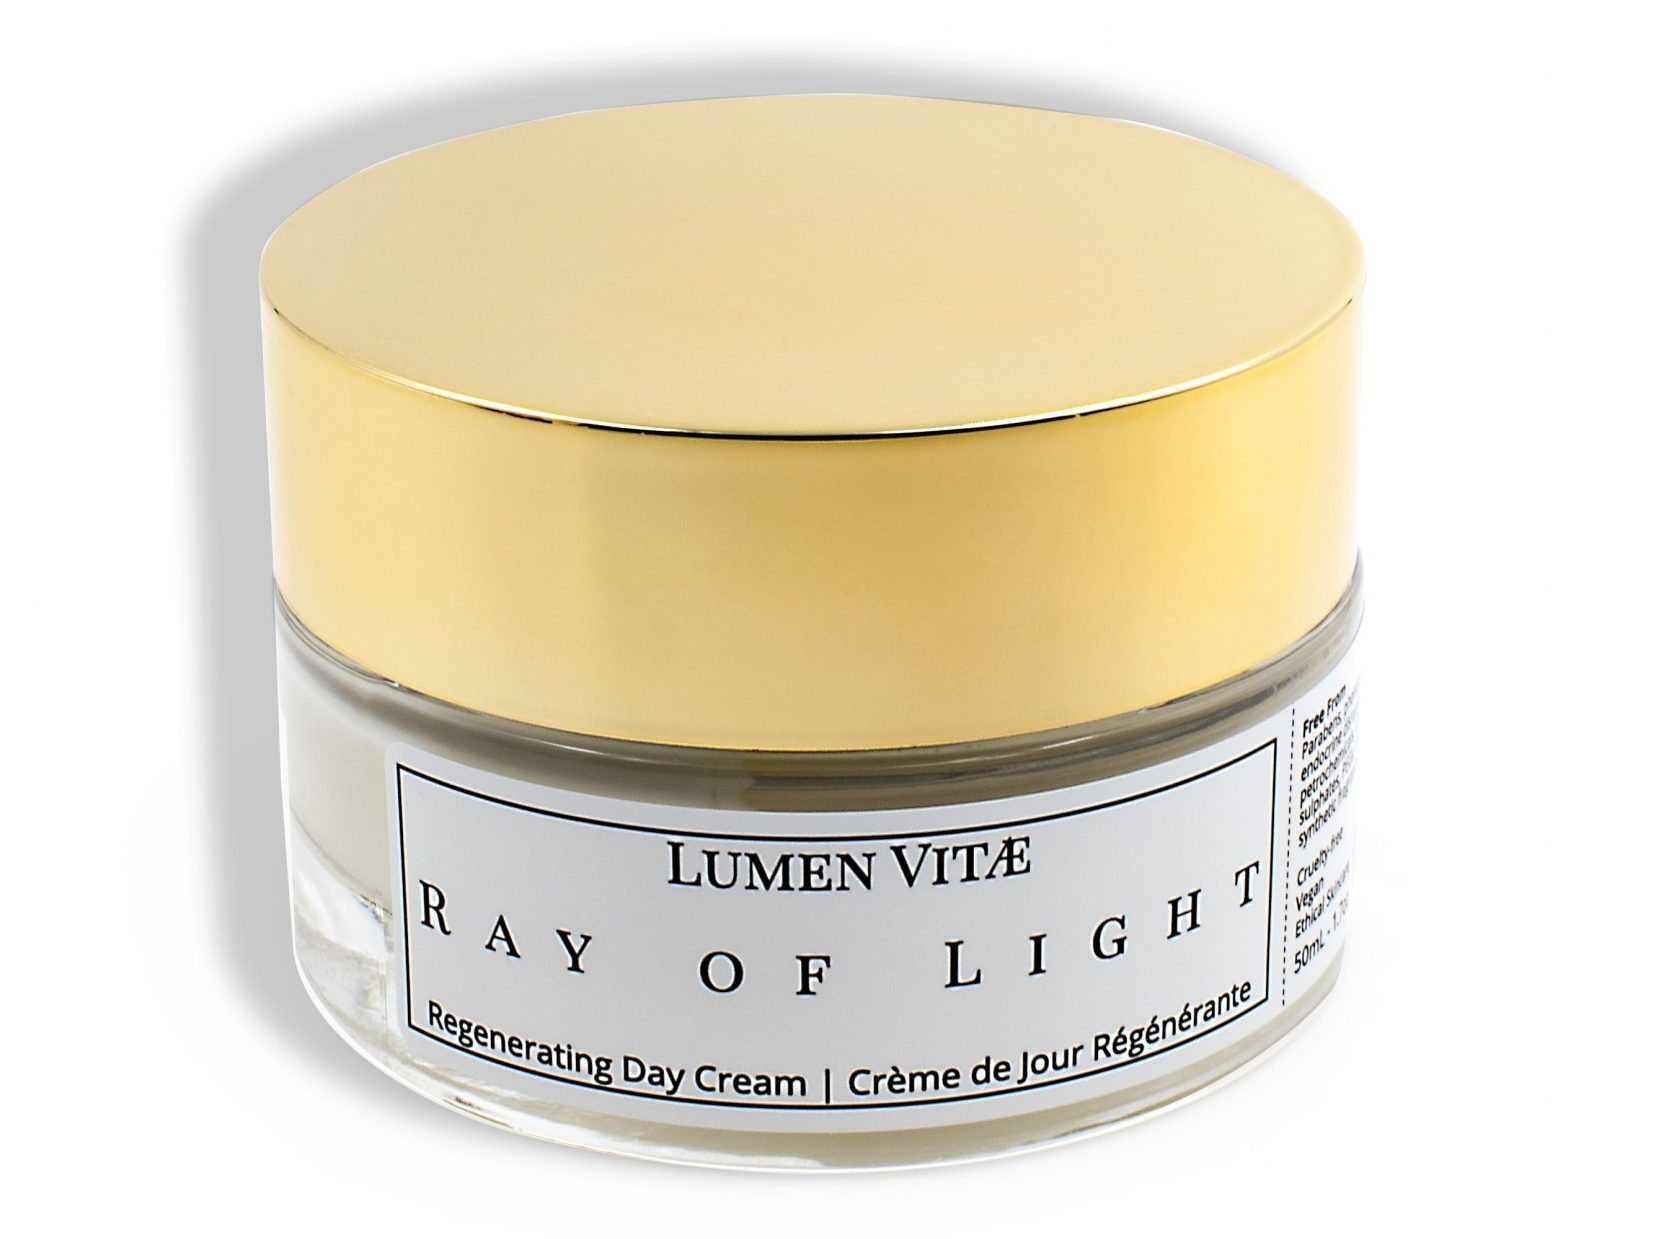 Ray of Light regenerating day cream